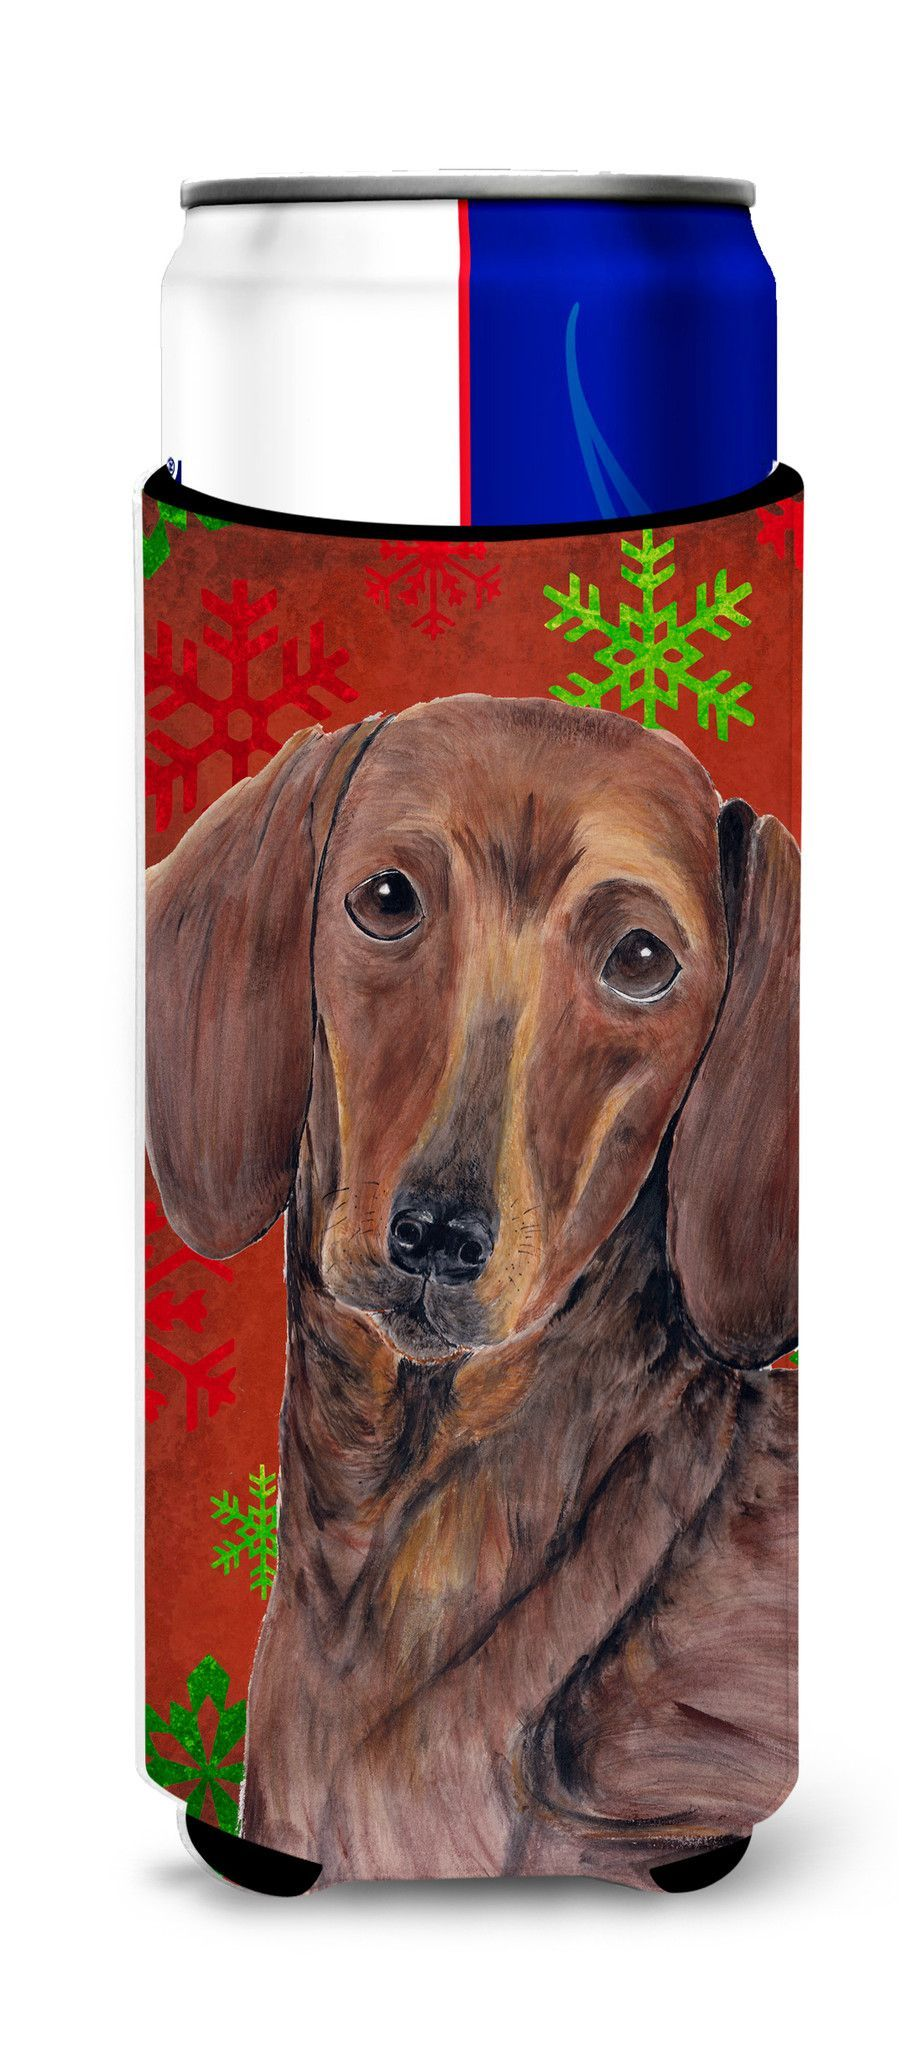 Dachshund Red and Green Snowflakes Holiday Christmas Ultra Beverage Insulators for slim cans SC9408MUK